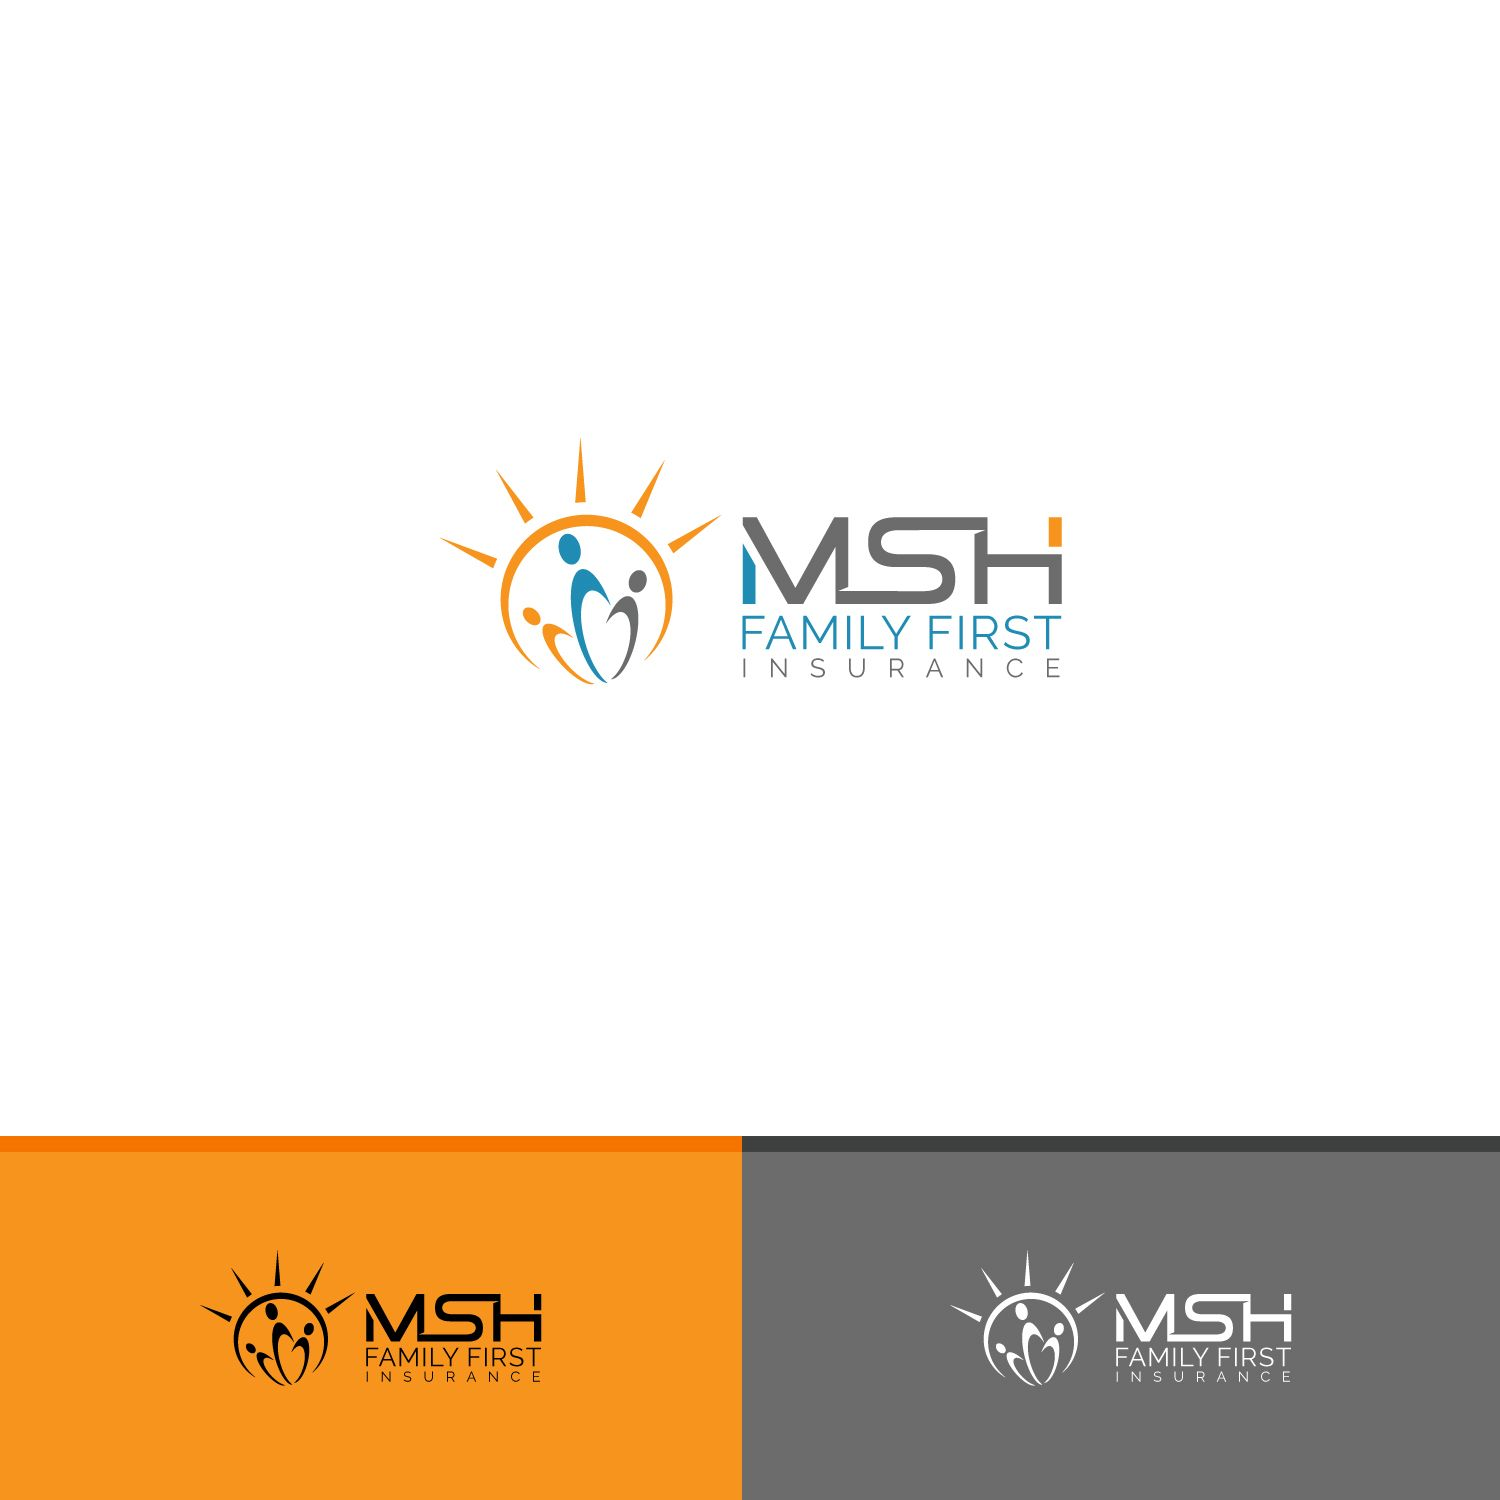 Msh Family First Insurance Merger Logo Turning Serious